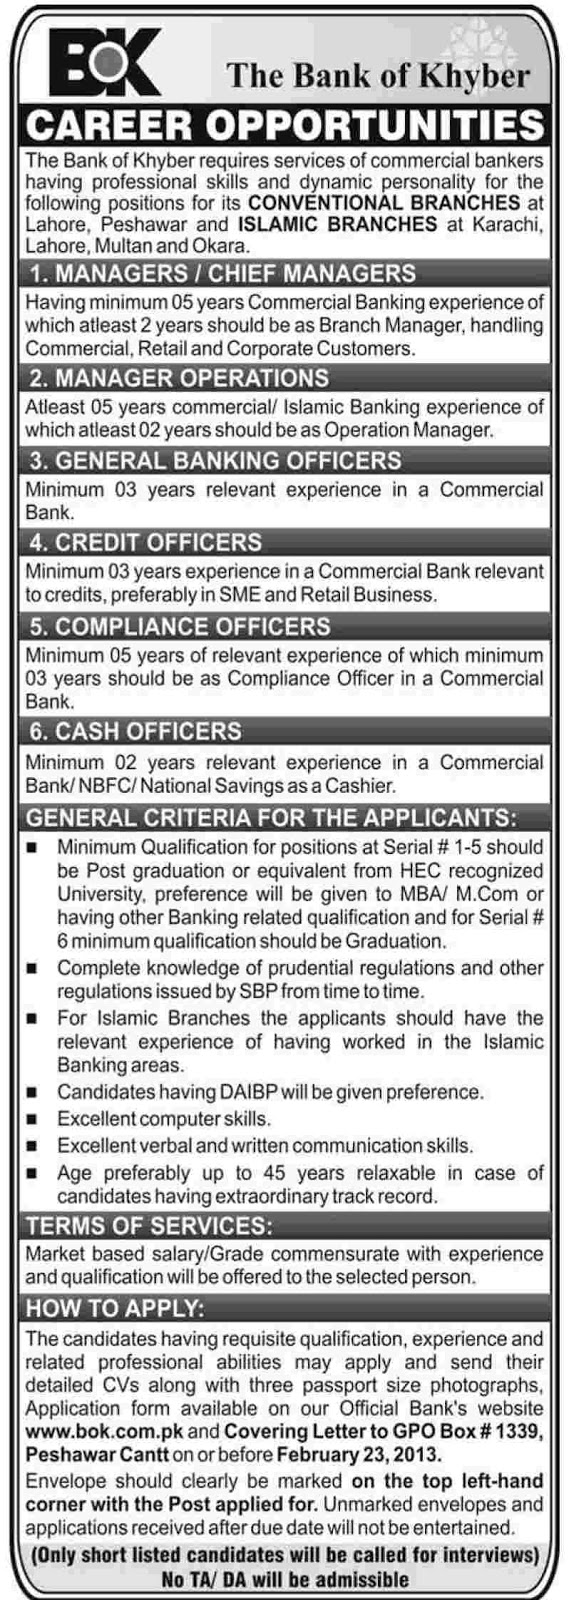 bank of khayber career opportunities in daily jang